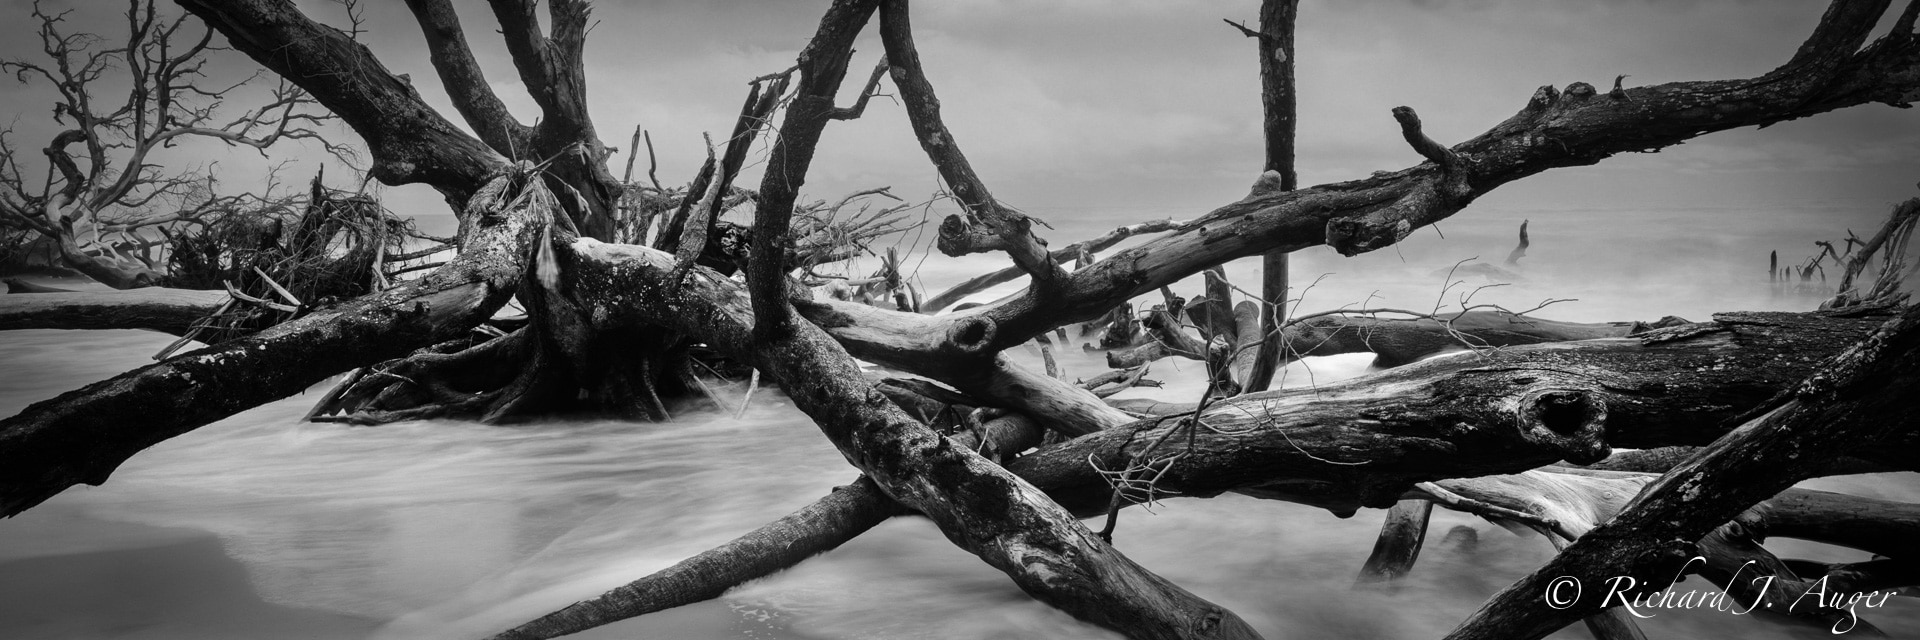 Hunting Island, South Carolina, Driftwood, Black and White, Ocean